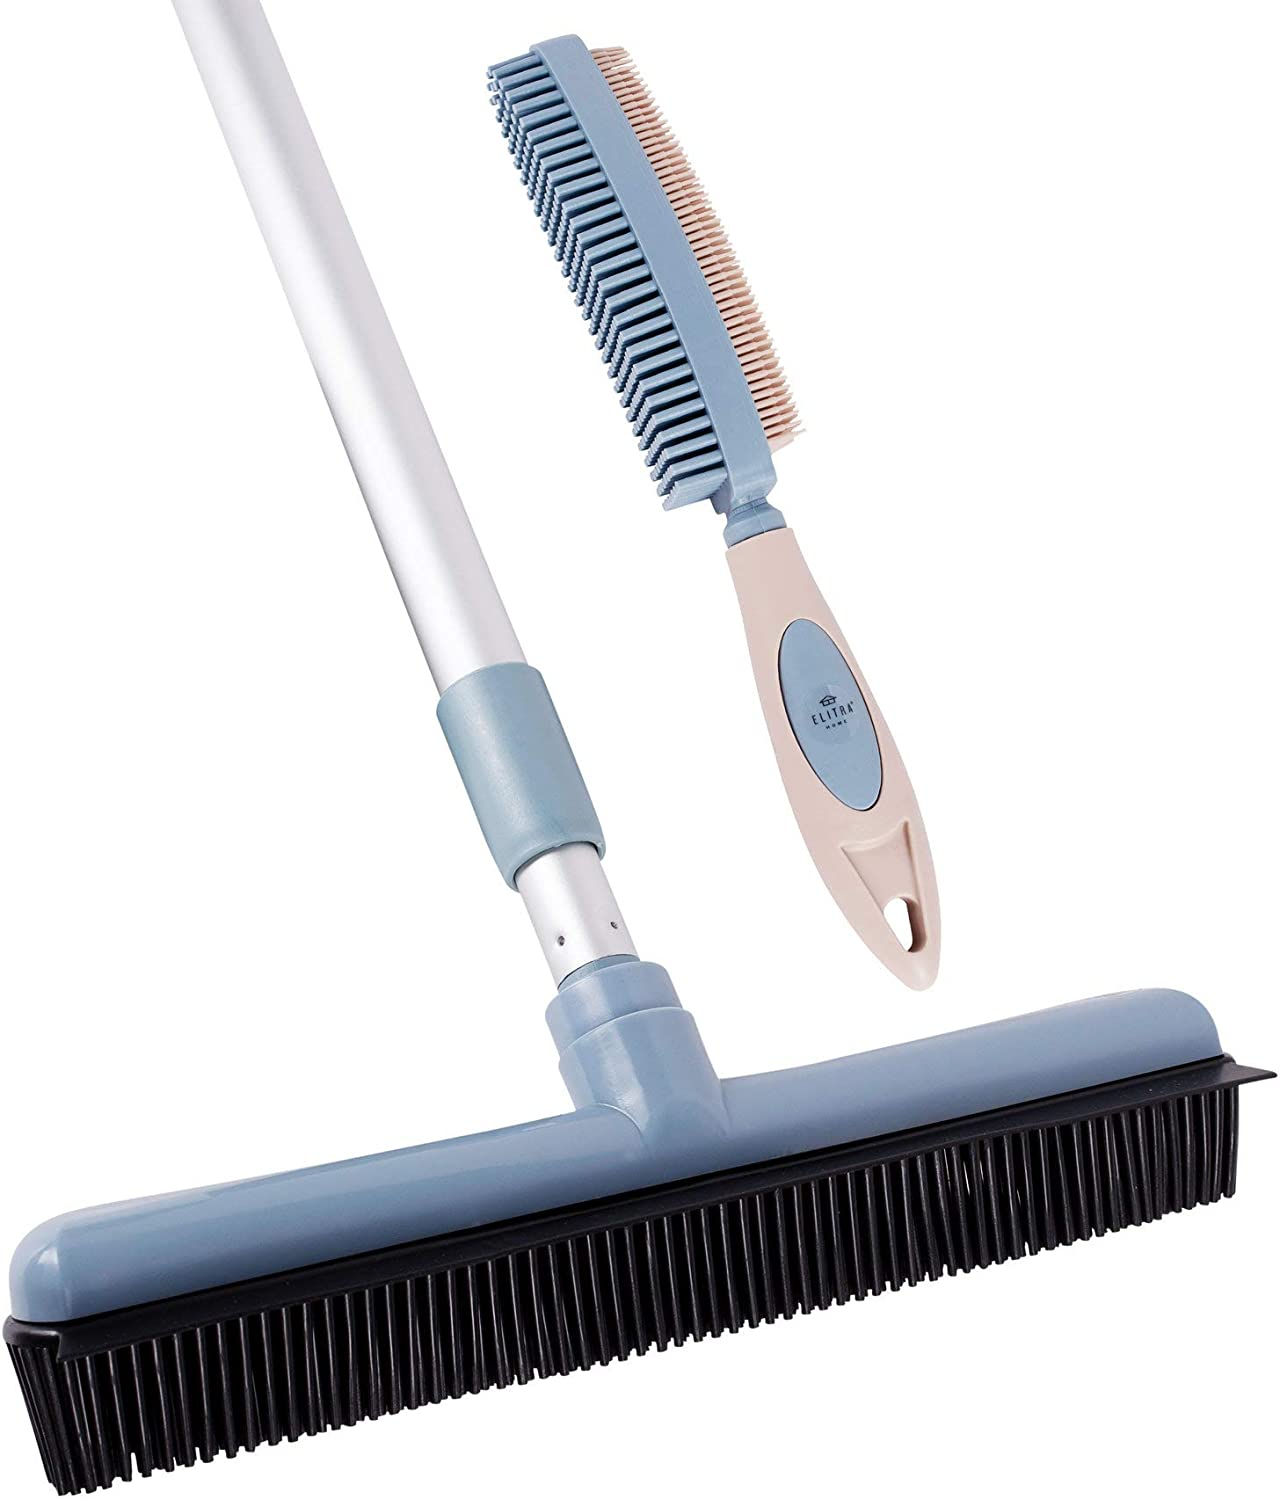 Pet Hair Removal Rubber Broom with Built in Window Shower Squeegee, 2 in 1 Floor Brush, Carpet Cleaner, 29 to 52 inch Adjustable Handle, Includes One Rubber Hair Brush by ELITRA HOME